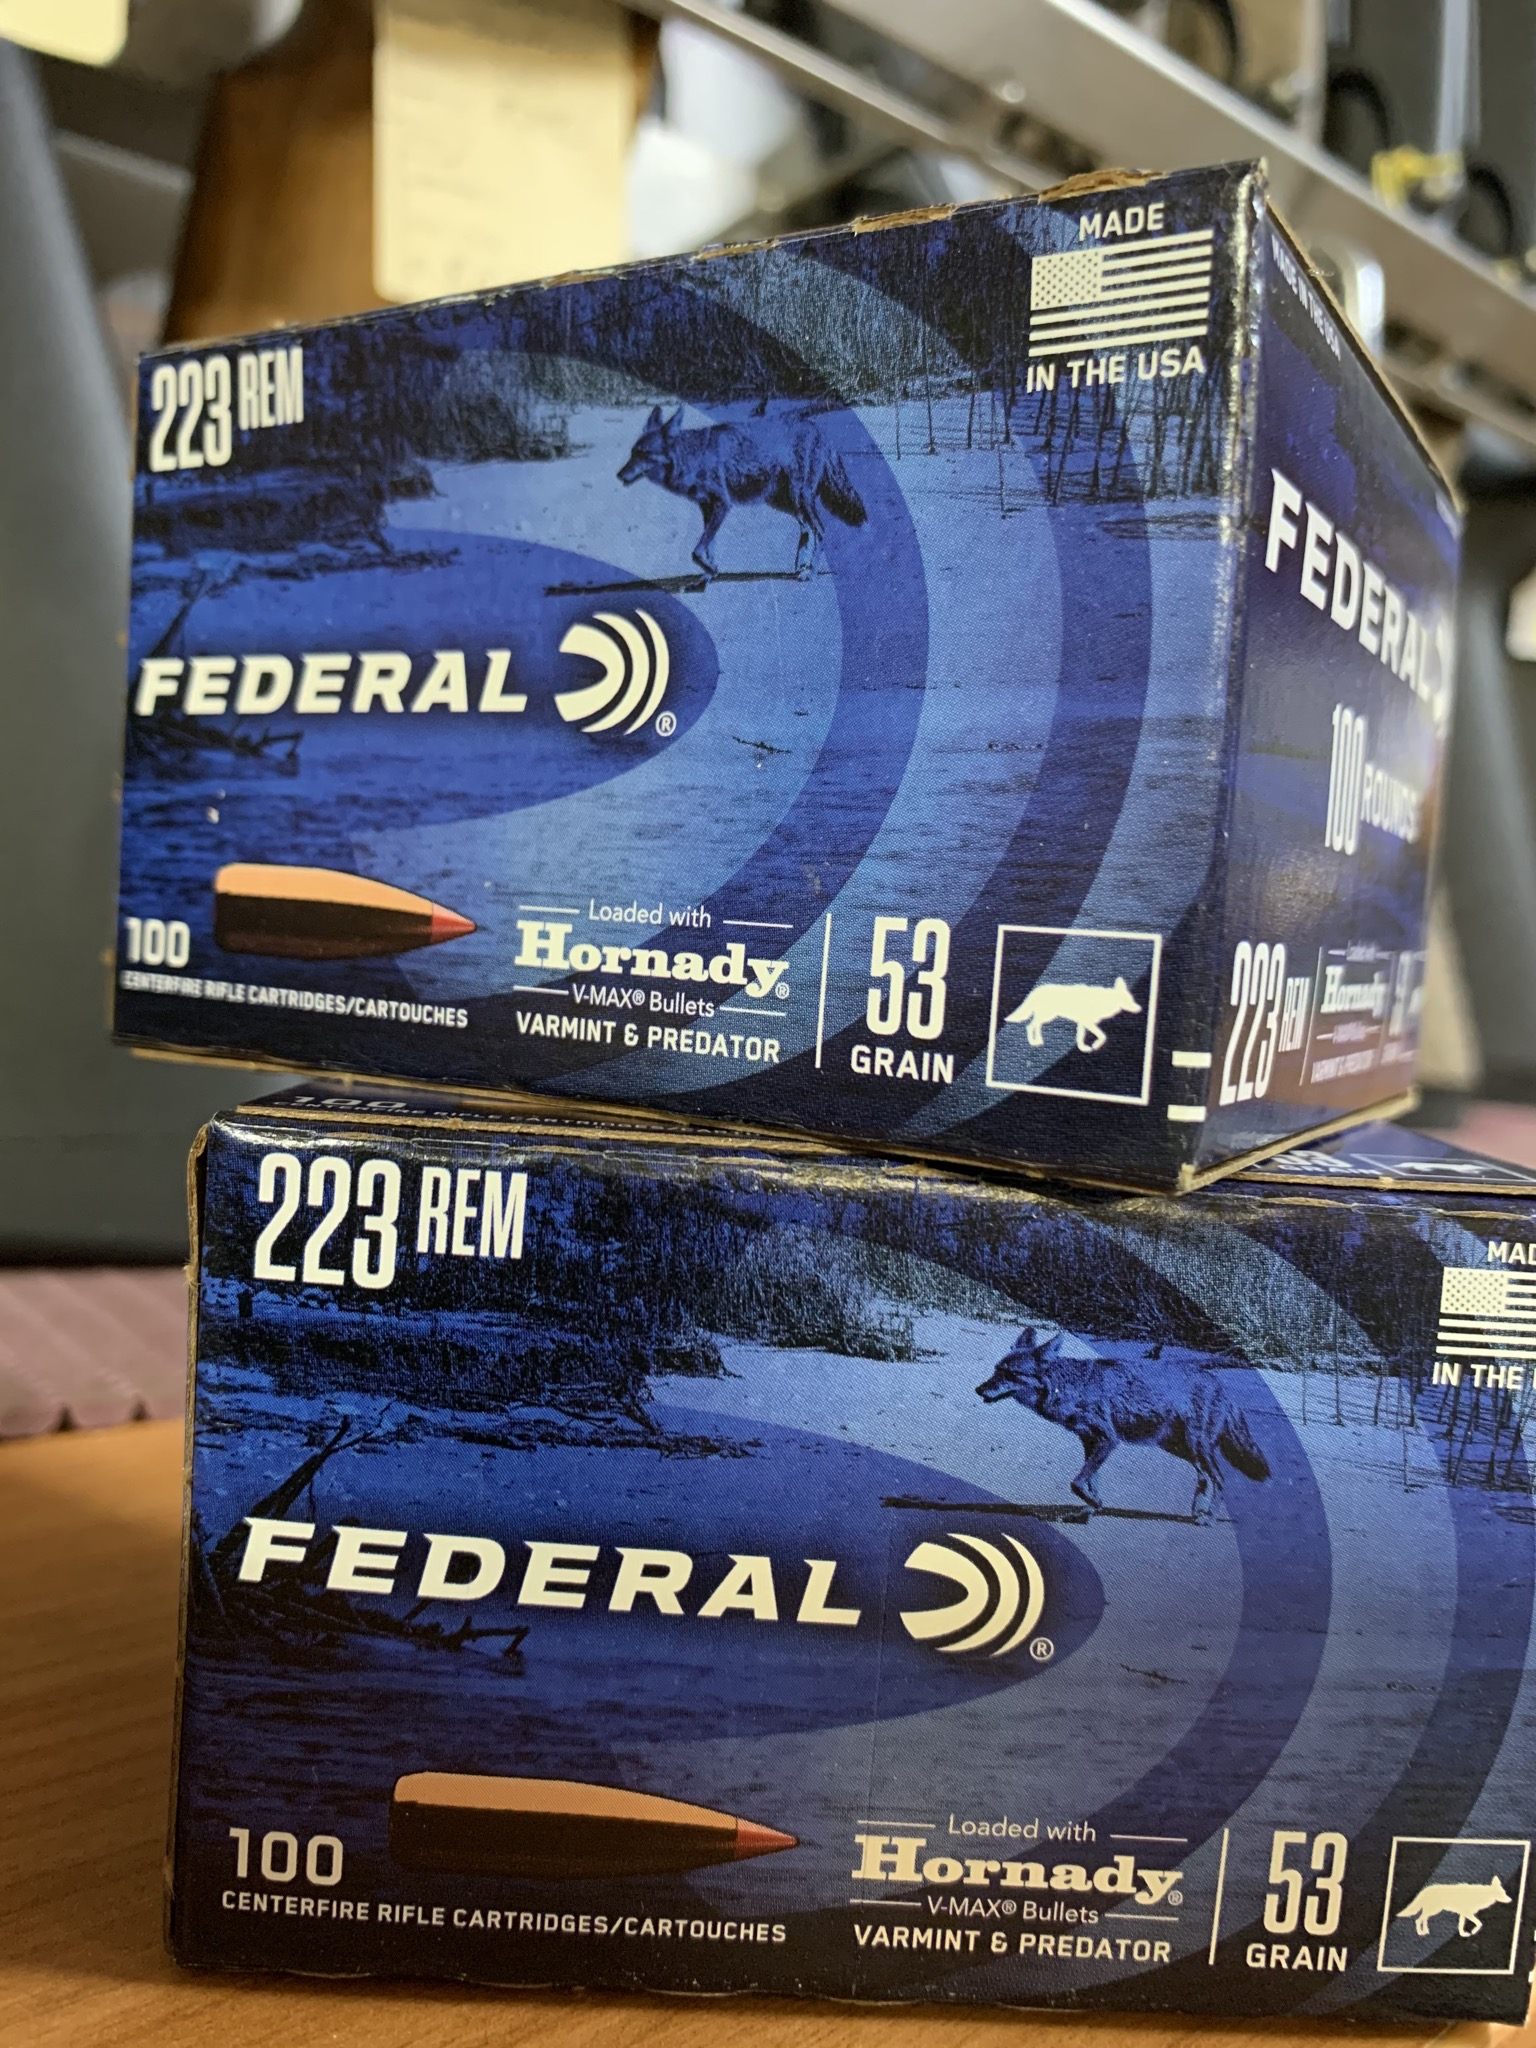 Federal 223 Rem 53 grain bulk pack ammunition (100 rounds)